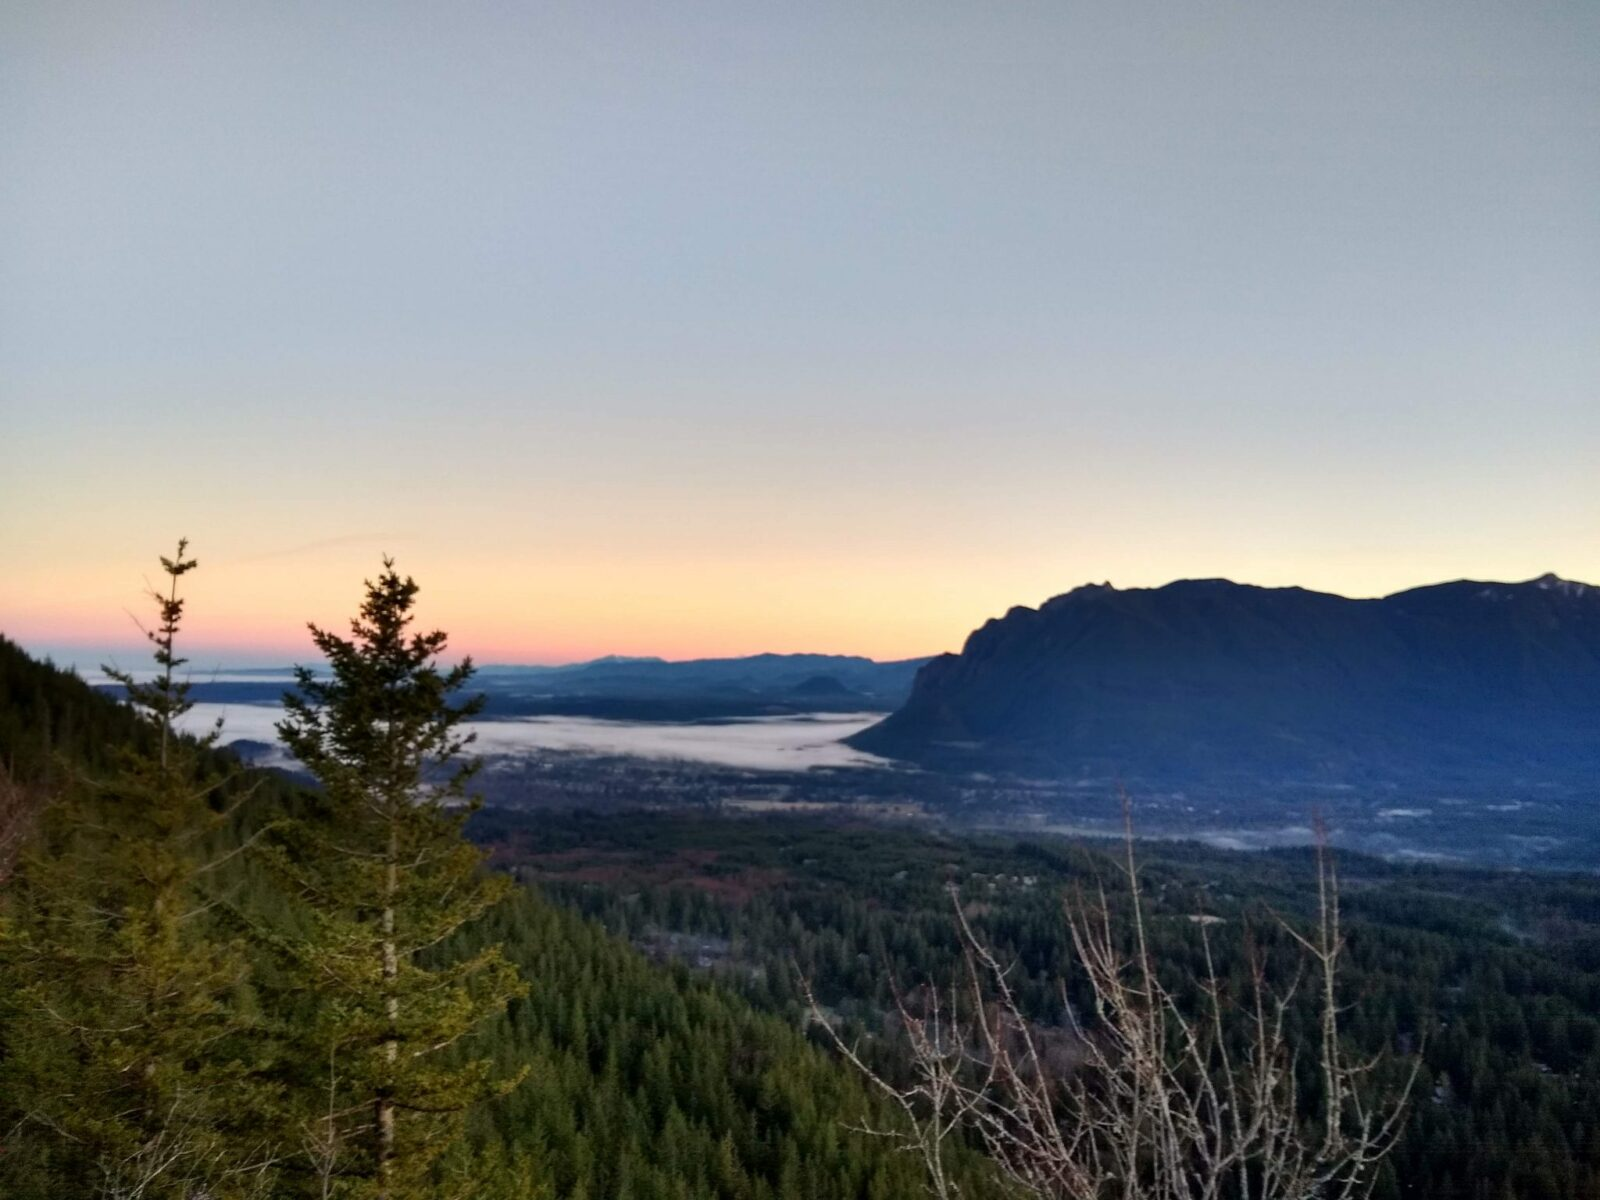 The sun is just about to rise behind a mountain from Rattlesnake ledge, a winter hike near seattle. The trees and fog in the valley is just starting to become visible and the hillsides are sillouetted.